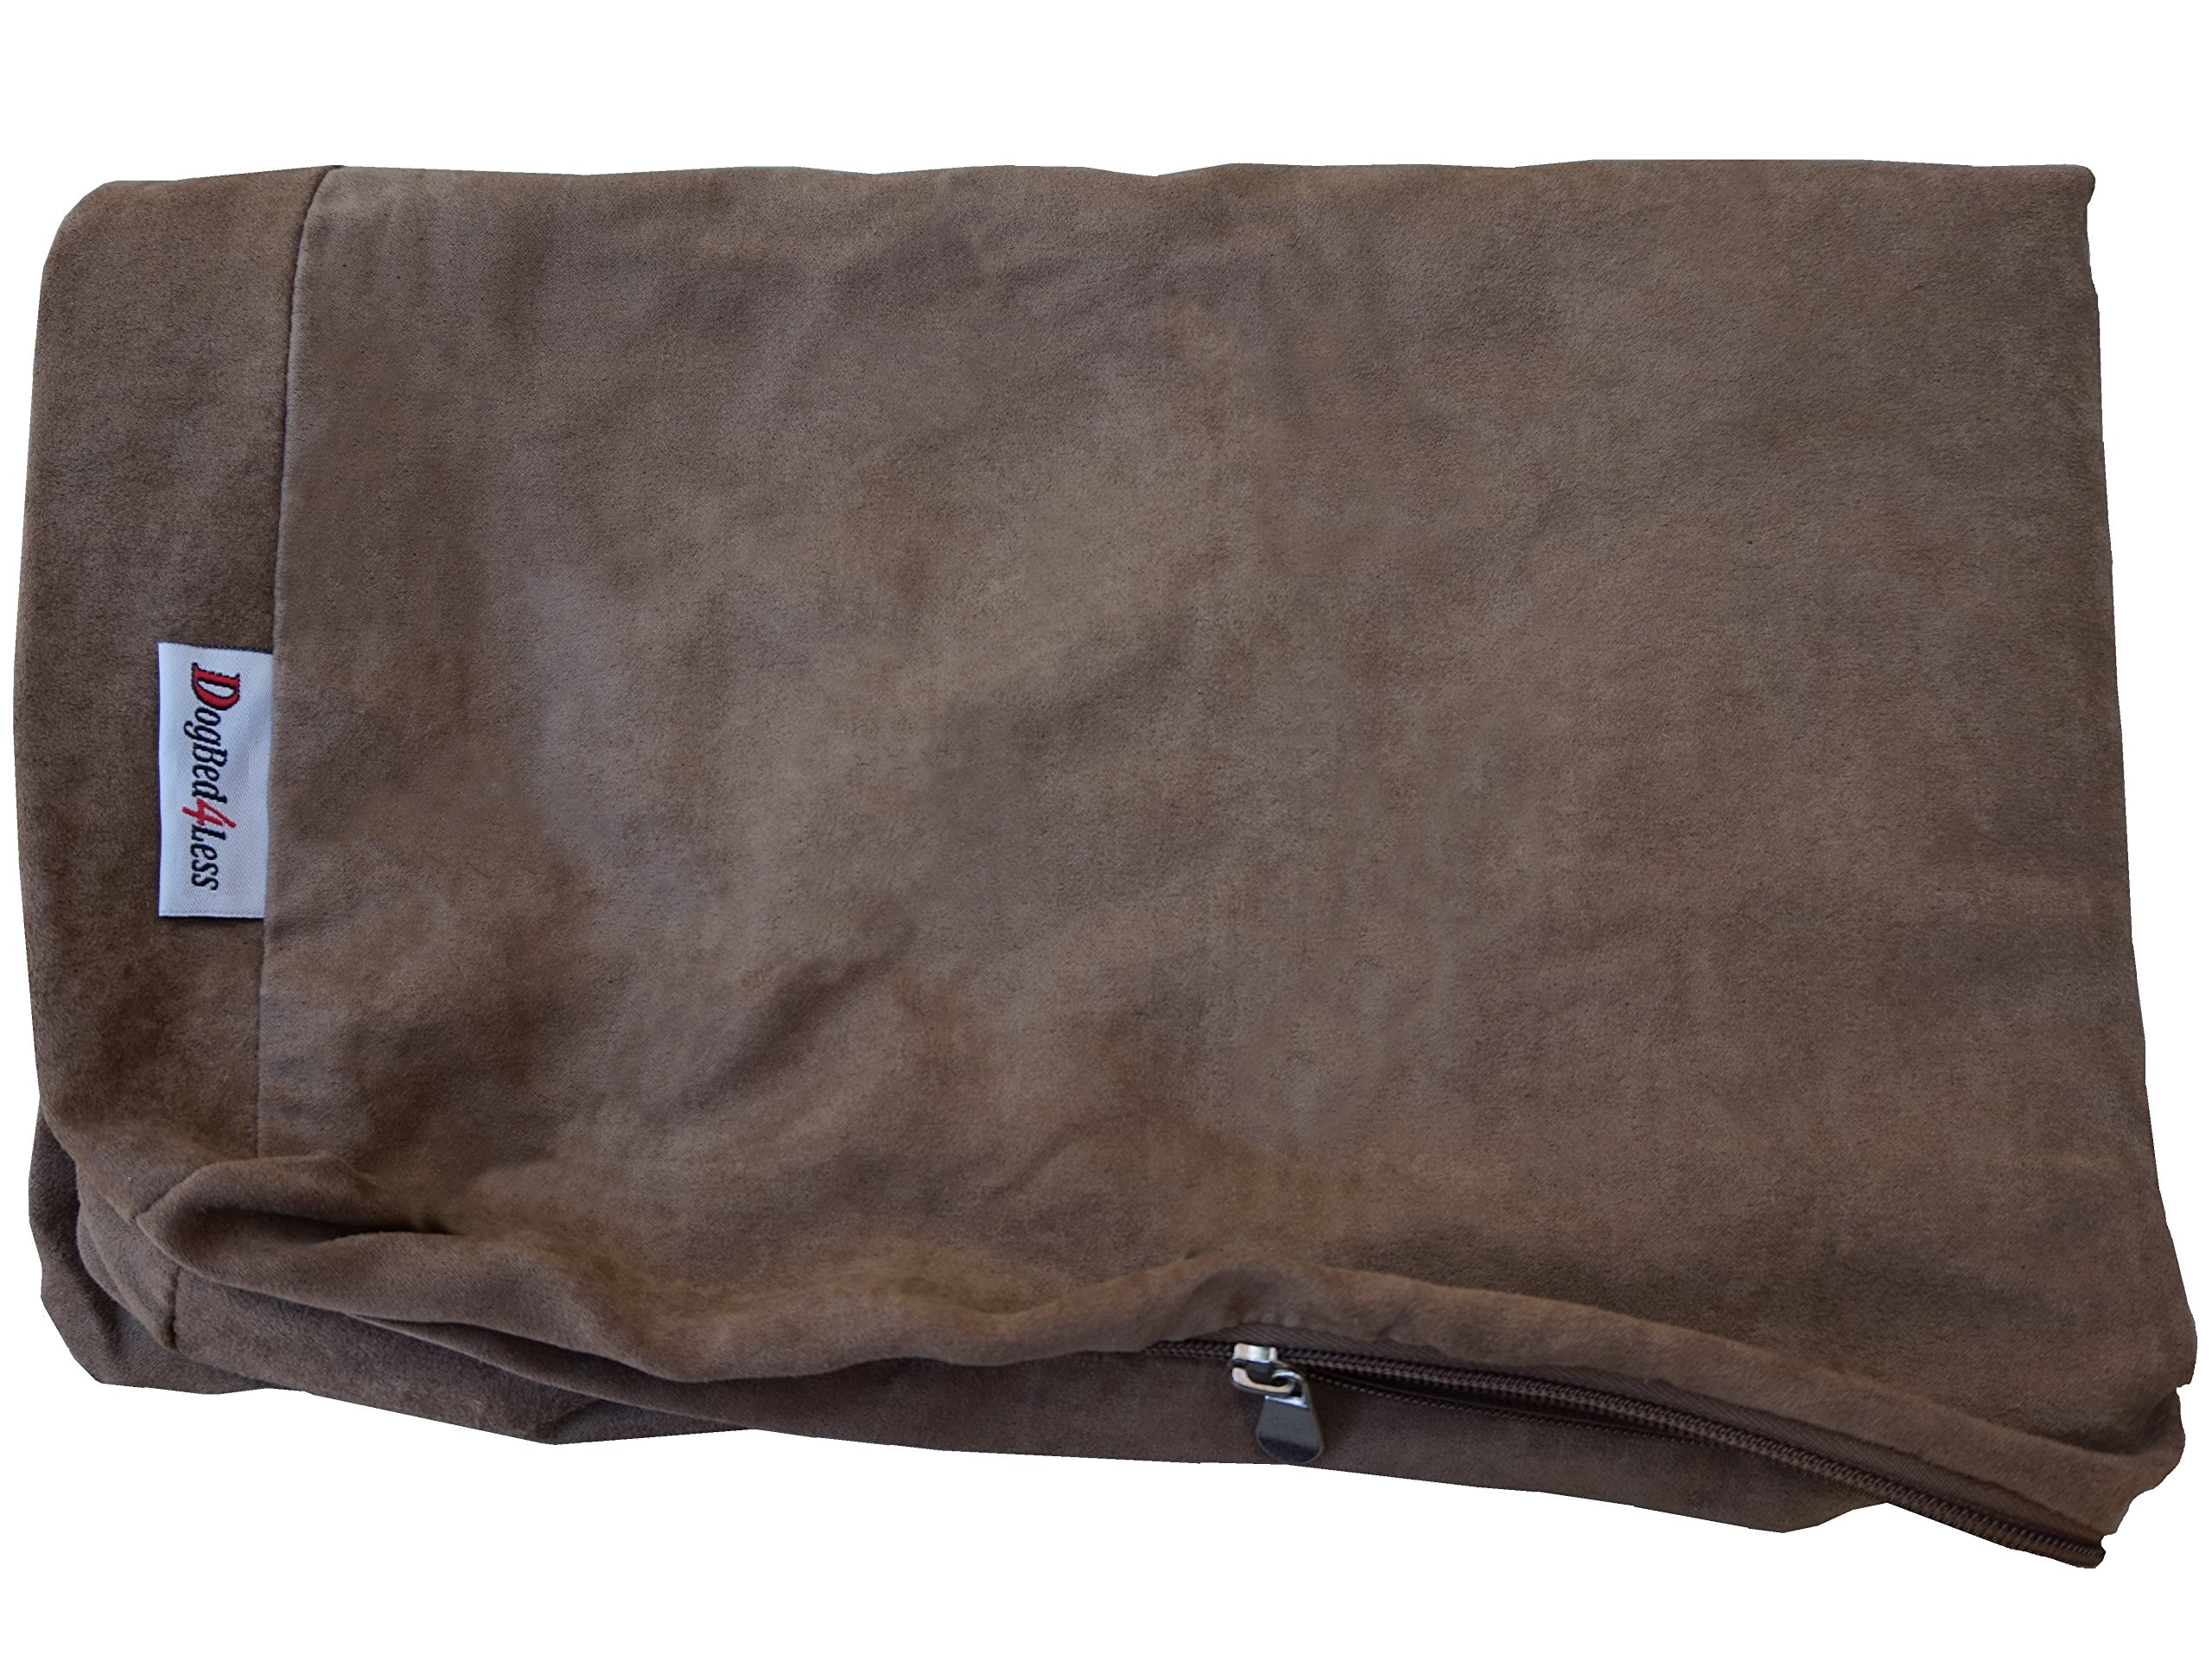 Dogbed4less External Pet Bed Cover with Zipper Liner for Small to Medium Dog Cat, 35''X20''x4'' SM, Brown - Replacement Cover Only